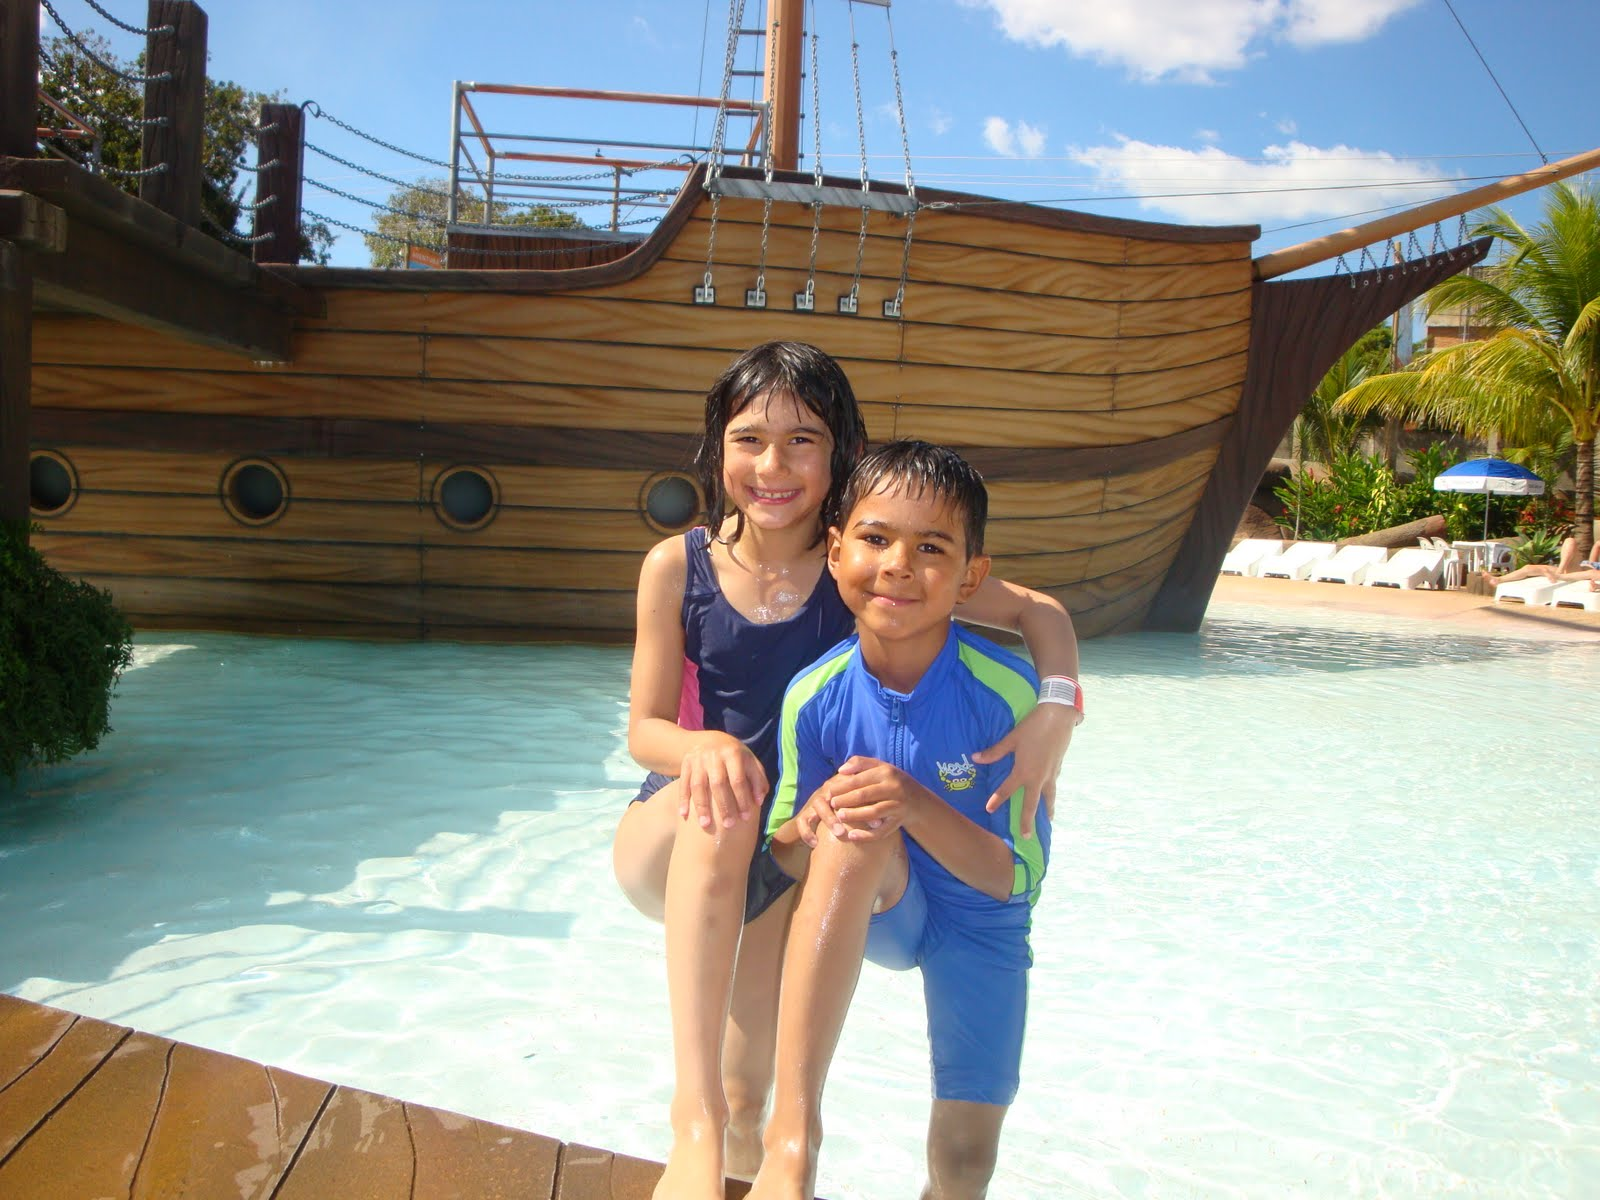 lots of fun at the pirate ship kids pool,